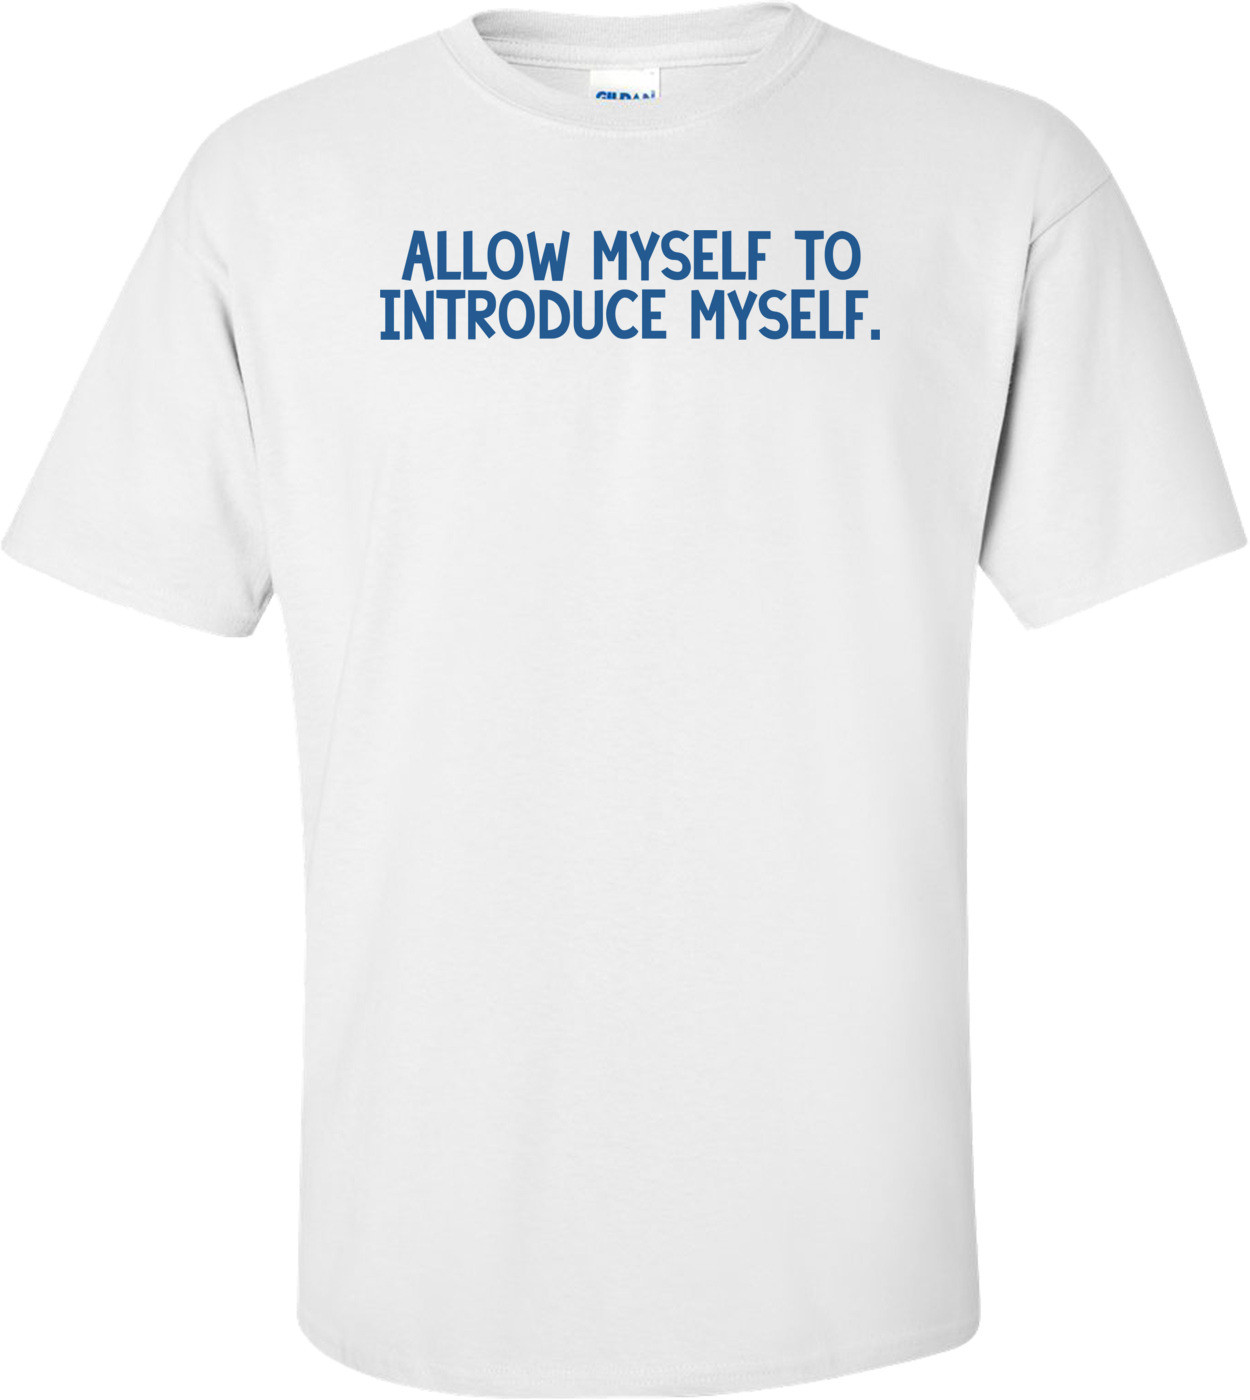 Allow myself to introduce myself. Shirt